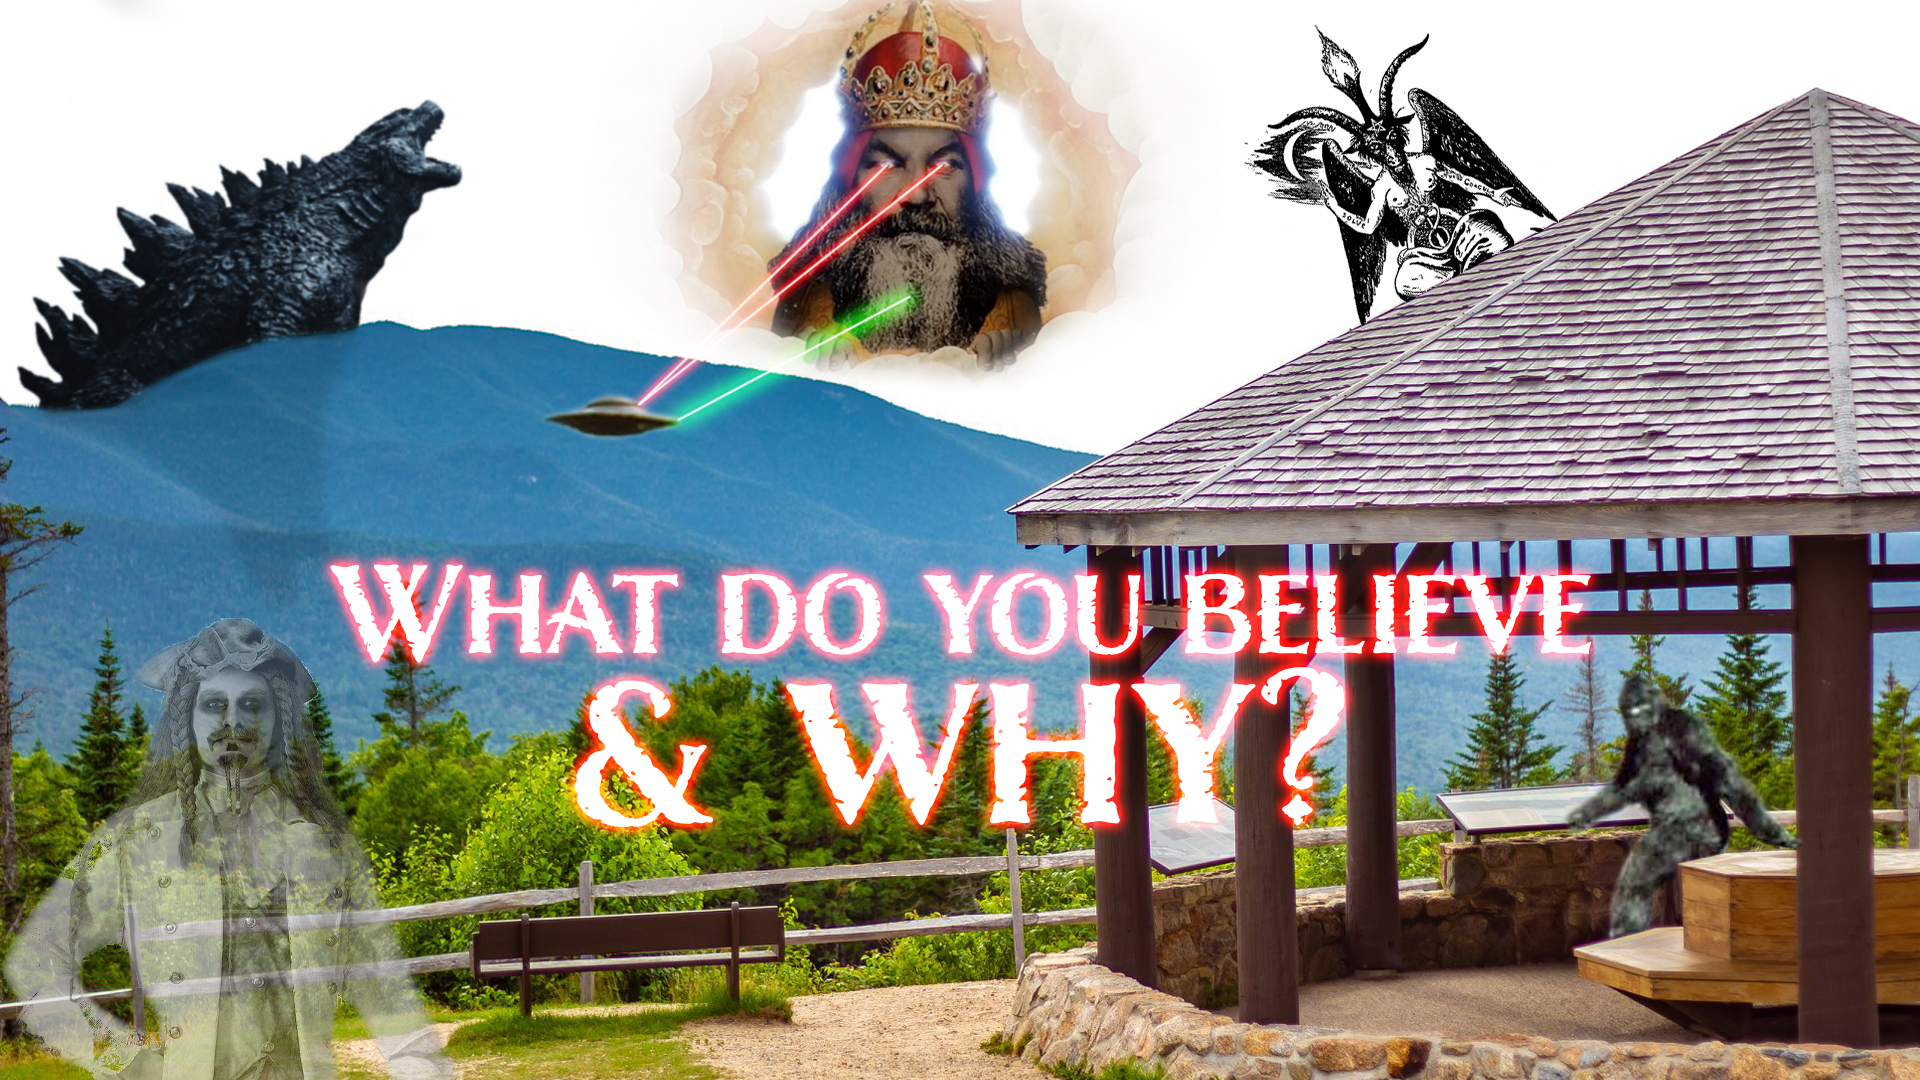 What do you believe 2